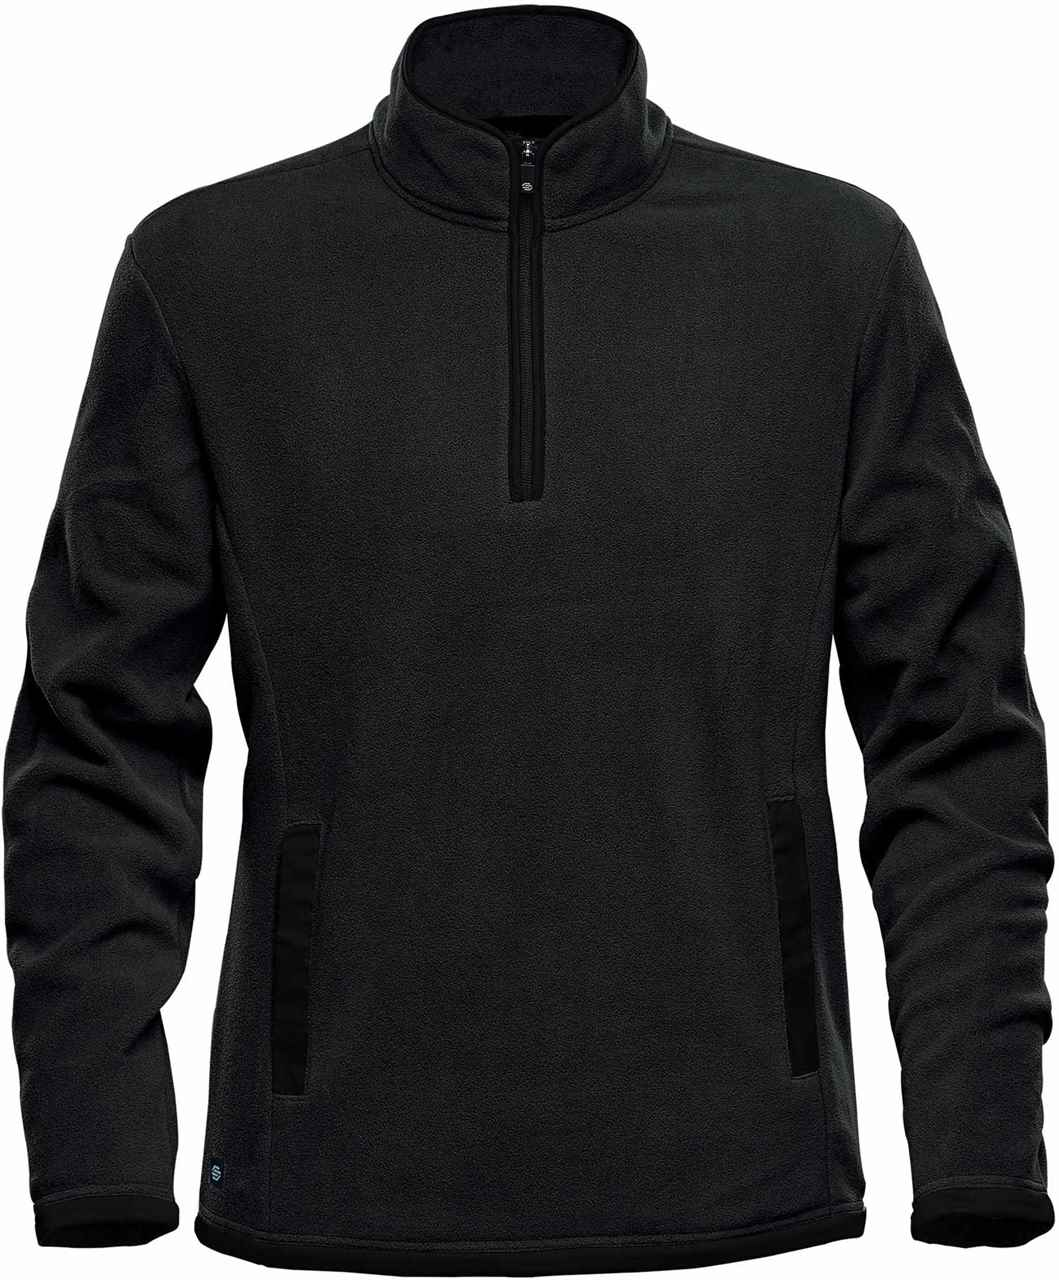 Picture of Stormtech Men's Shasta Tech Fleece 1/4 Zip Sweatshirt